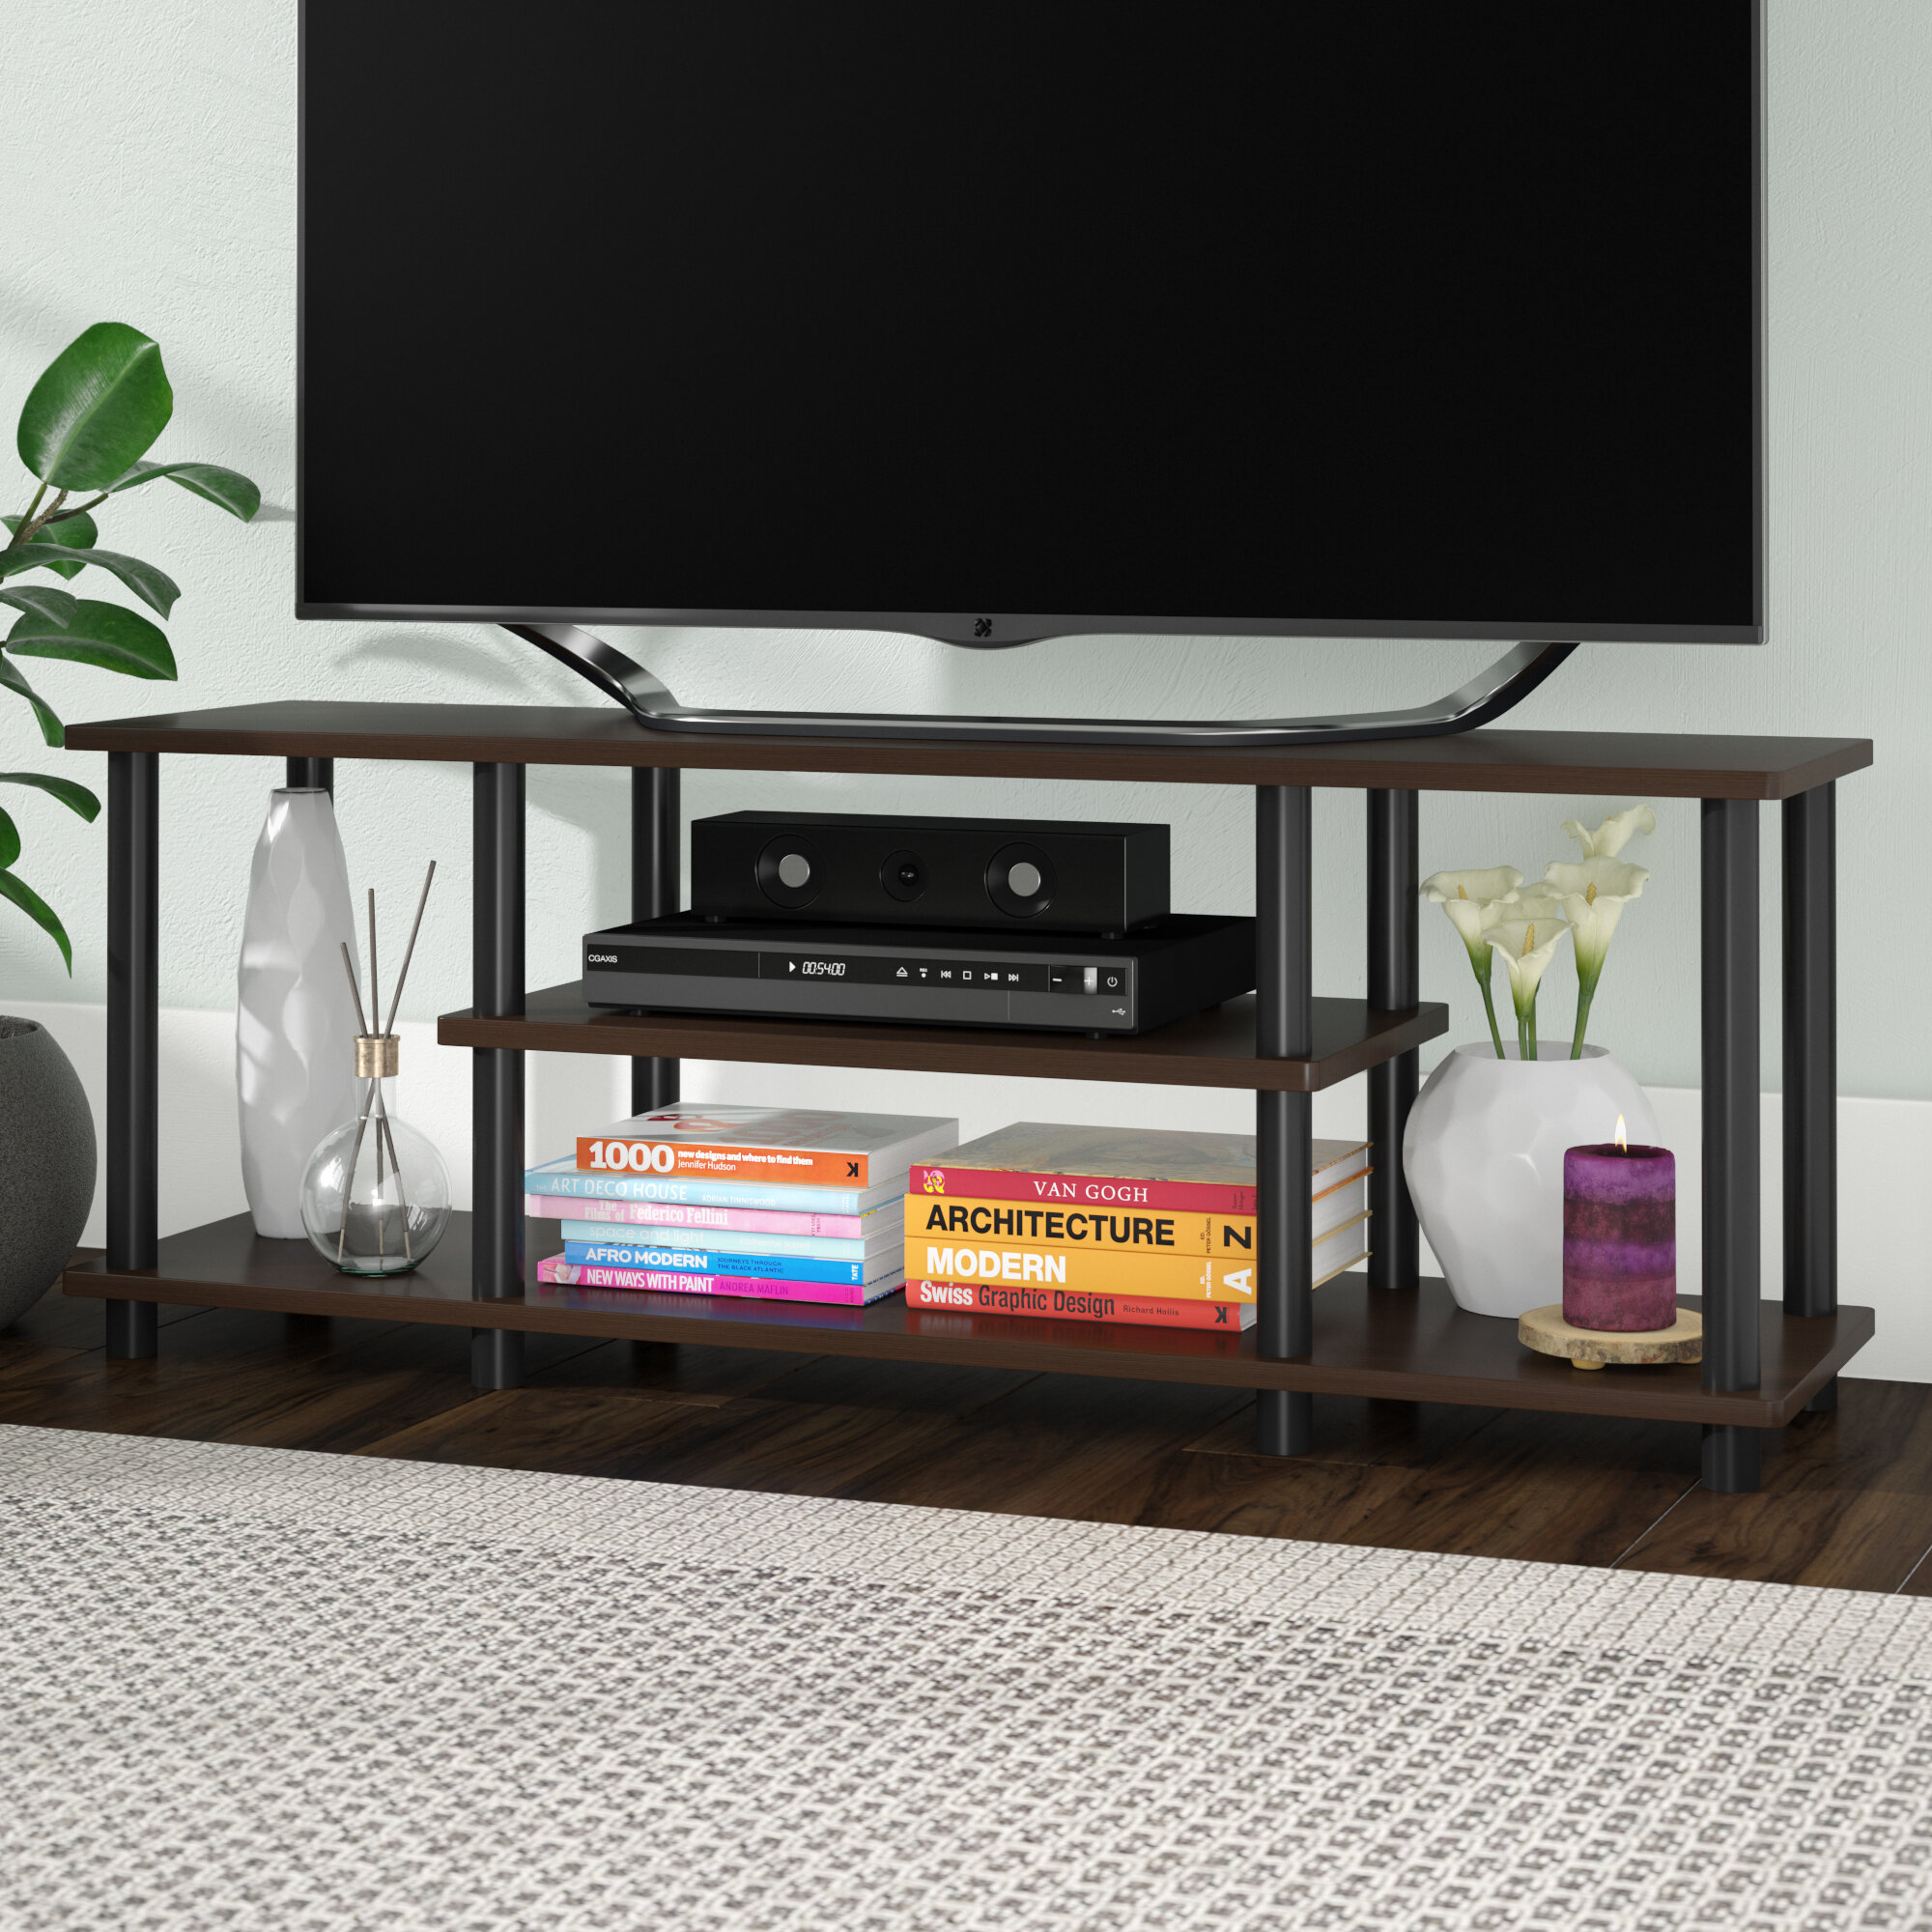 Designs Of Tv Stand : Modern tv stand designs for ultimate home entertainment